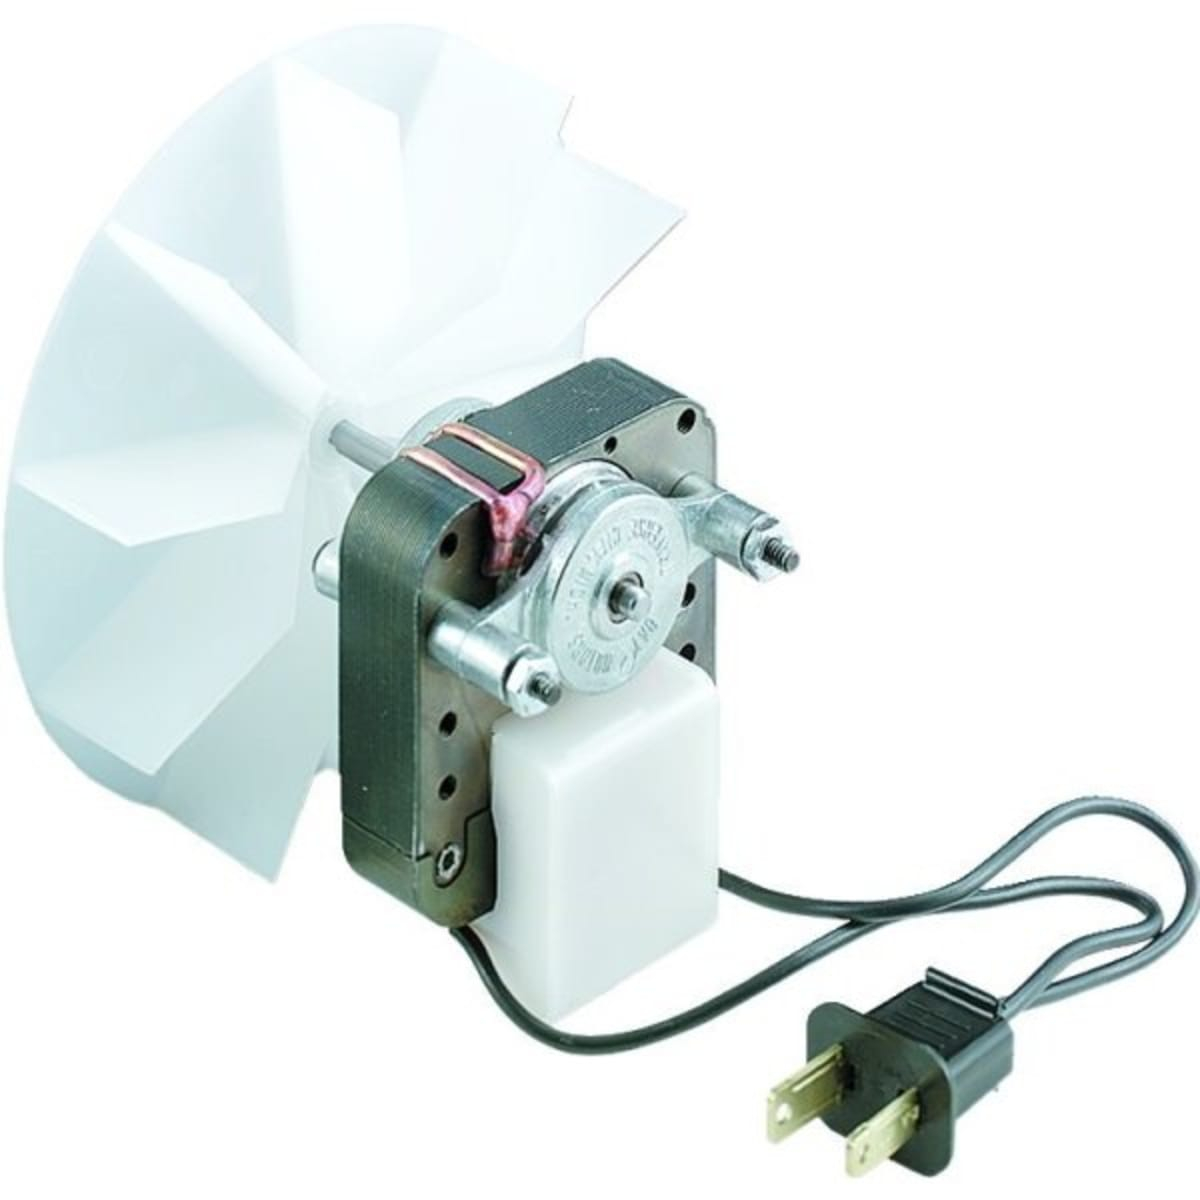 Exhaust Motor And Fan Assembly Package Of 2 Hd Supply with size 1200 X 1200